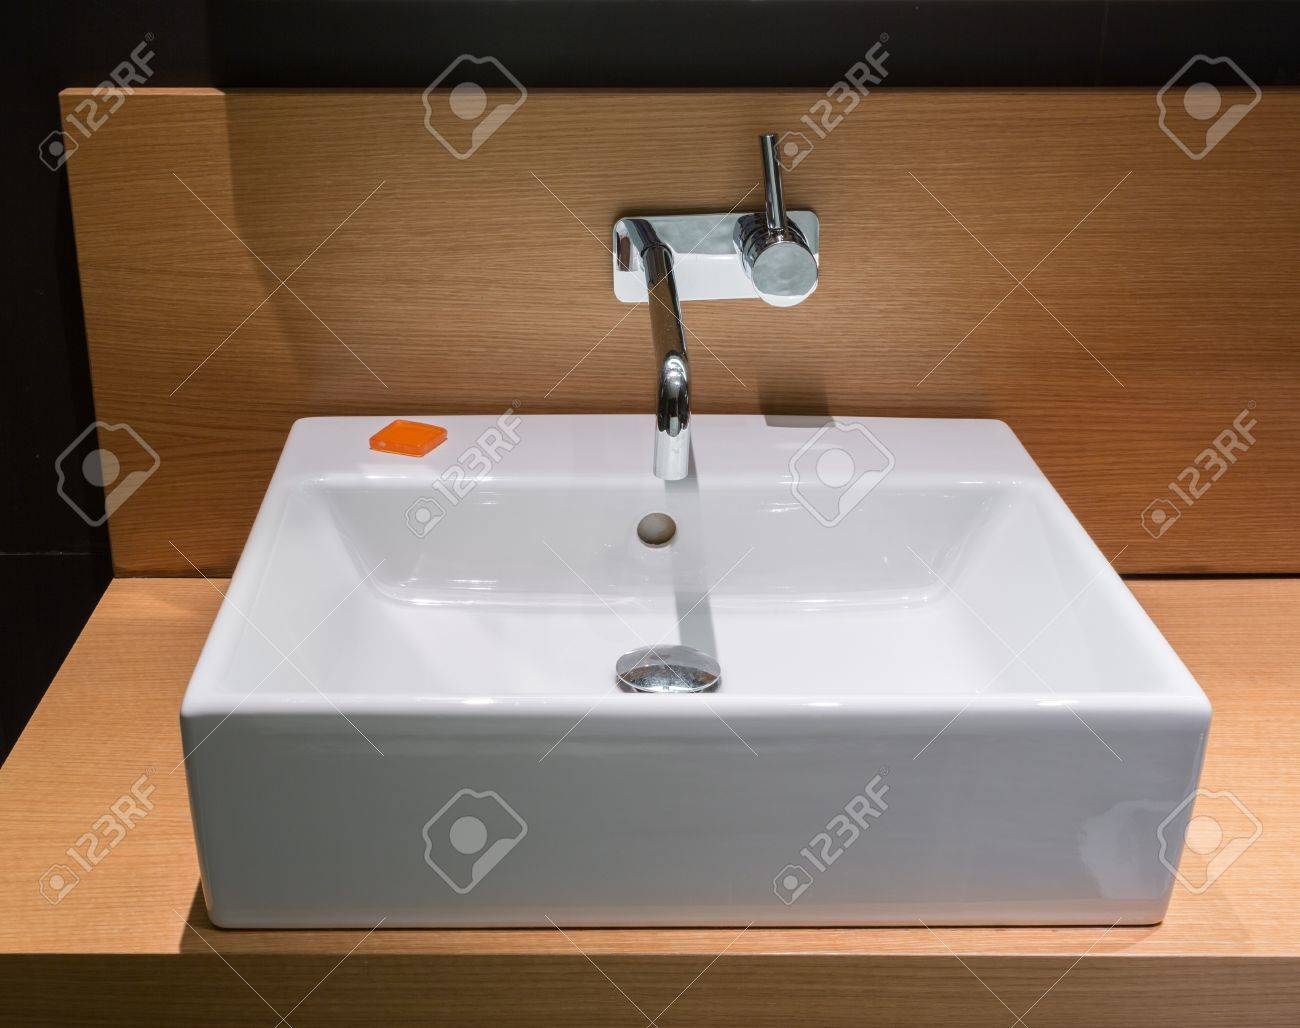 Details of modern square ceramic sink and faucet tap in surface mount on wooden surface Stock Photo - 18152548